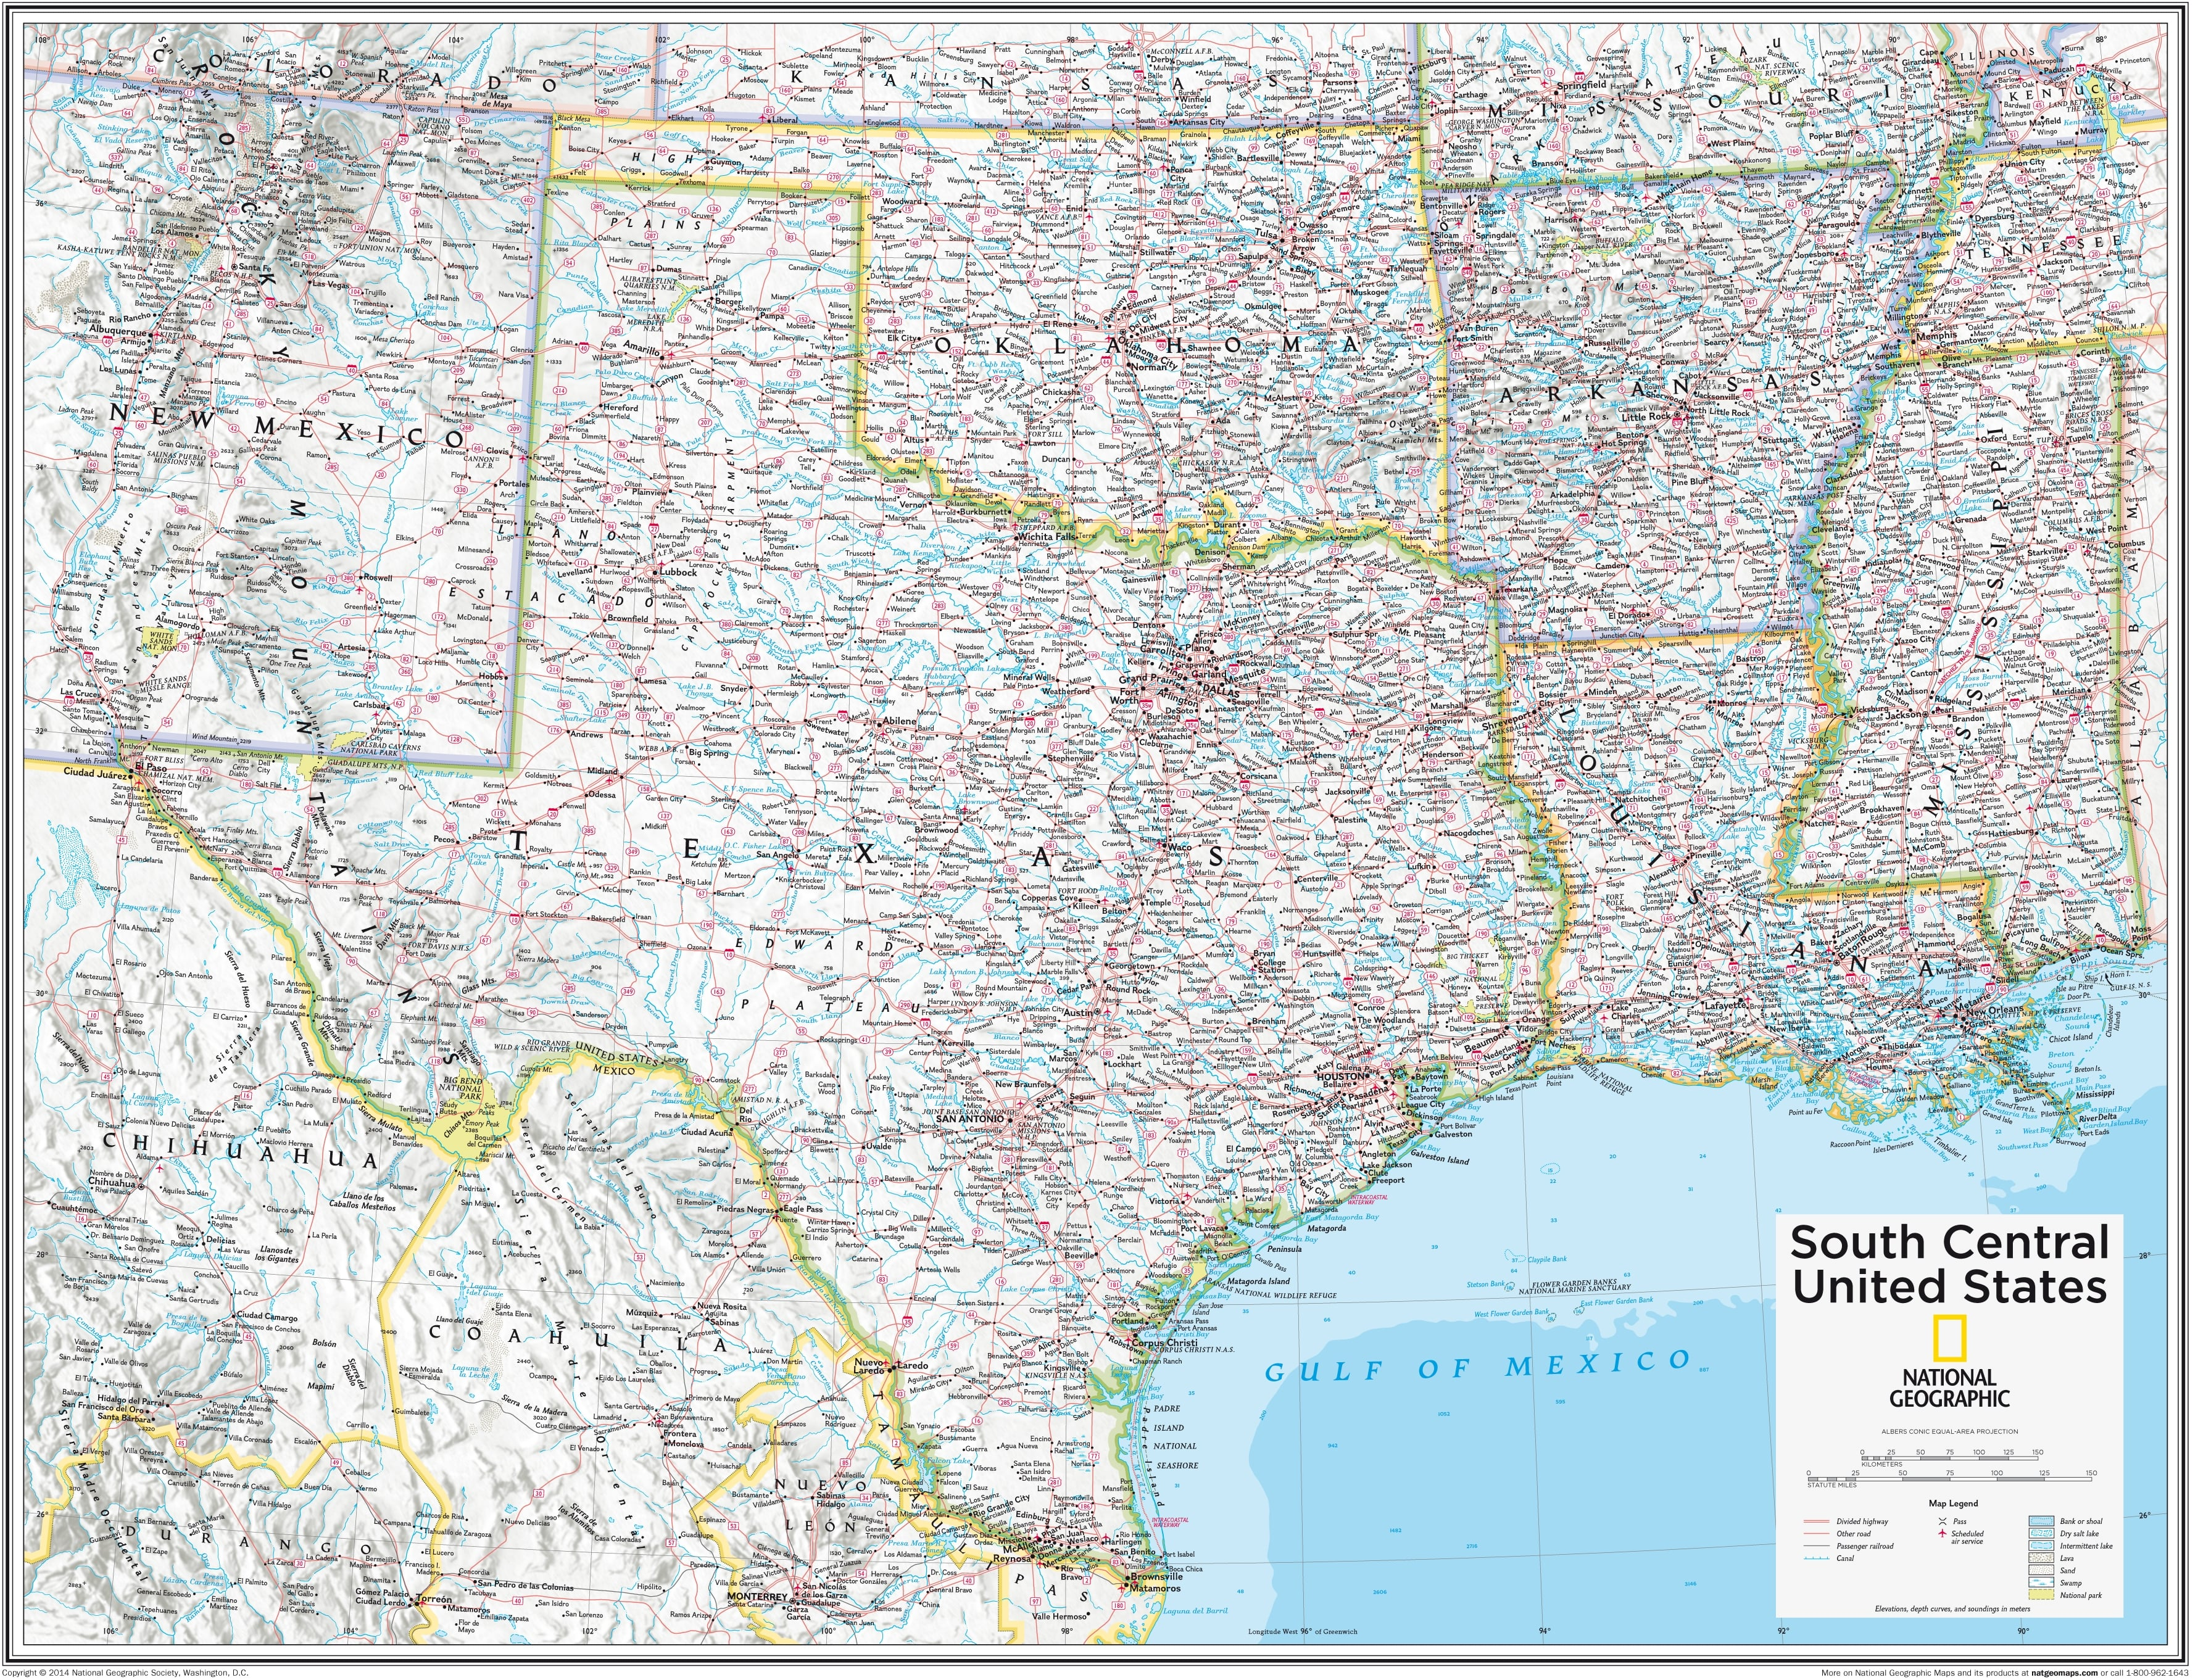 South Central United States 91 x 73cm